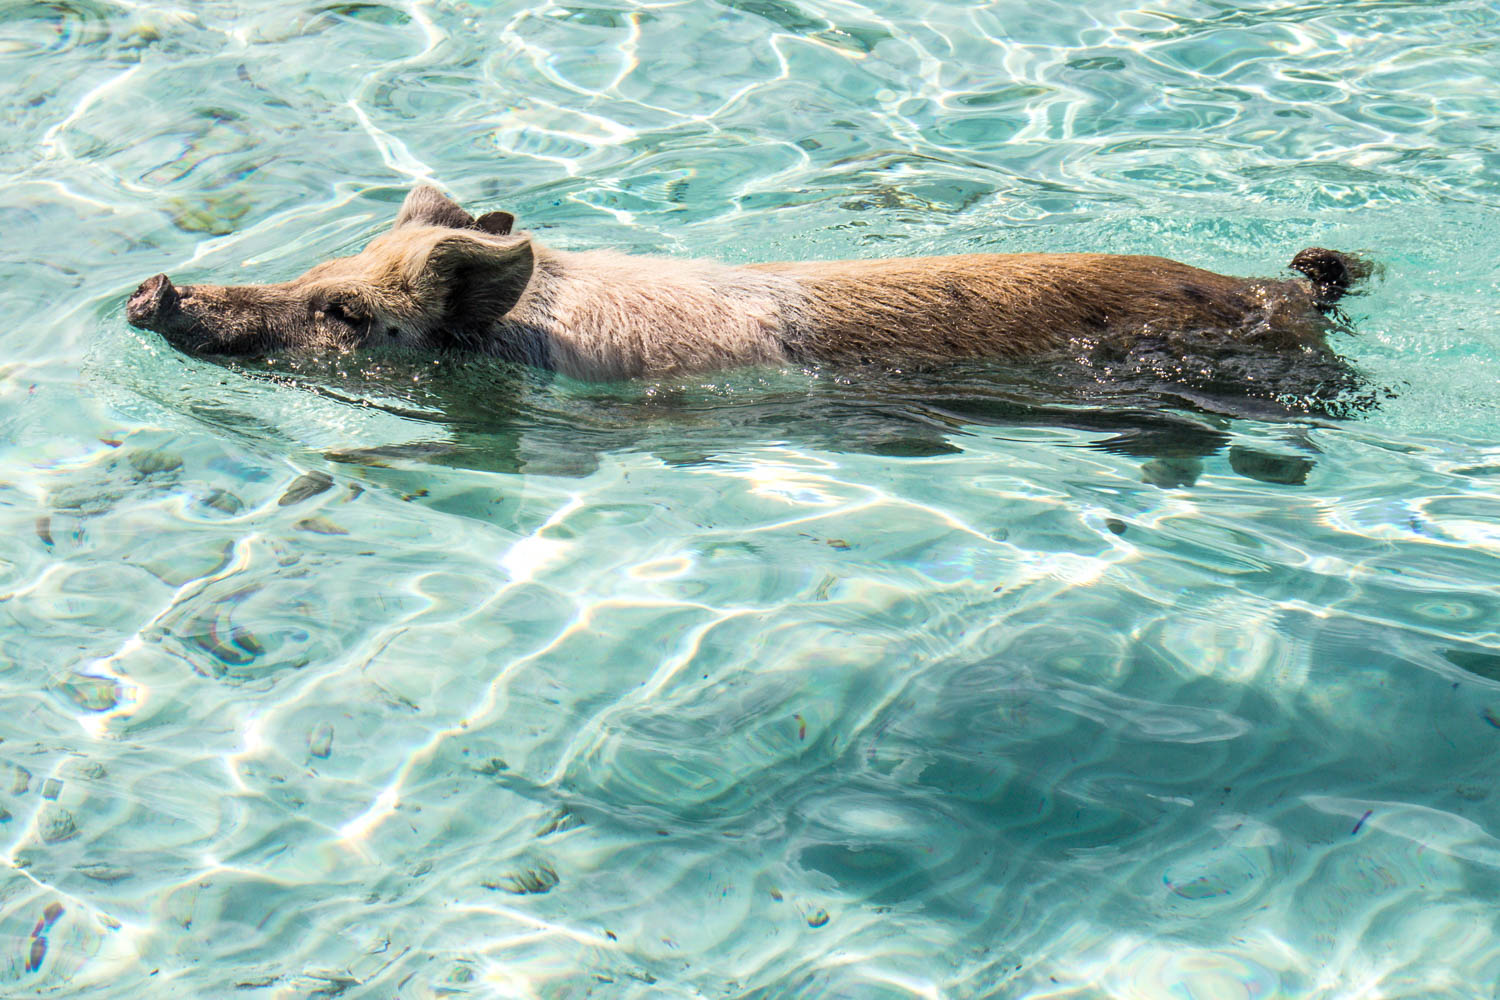 Pig Beach Exuma is a ten minute boat ride from Staniel Cay. A Pig Beach Bahamas tour takes all day from Nassau to Pig Beach.